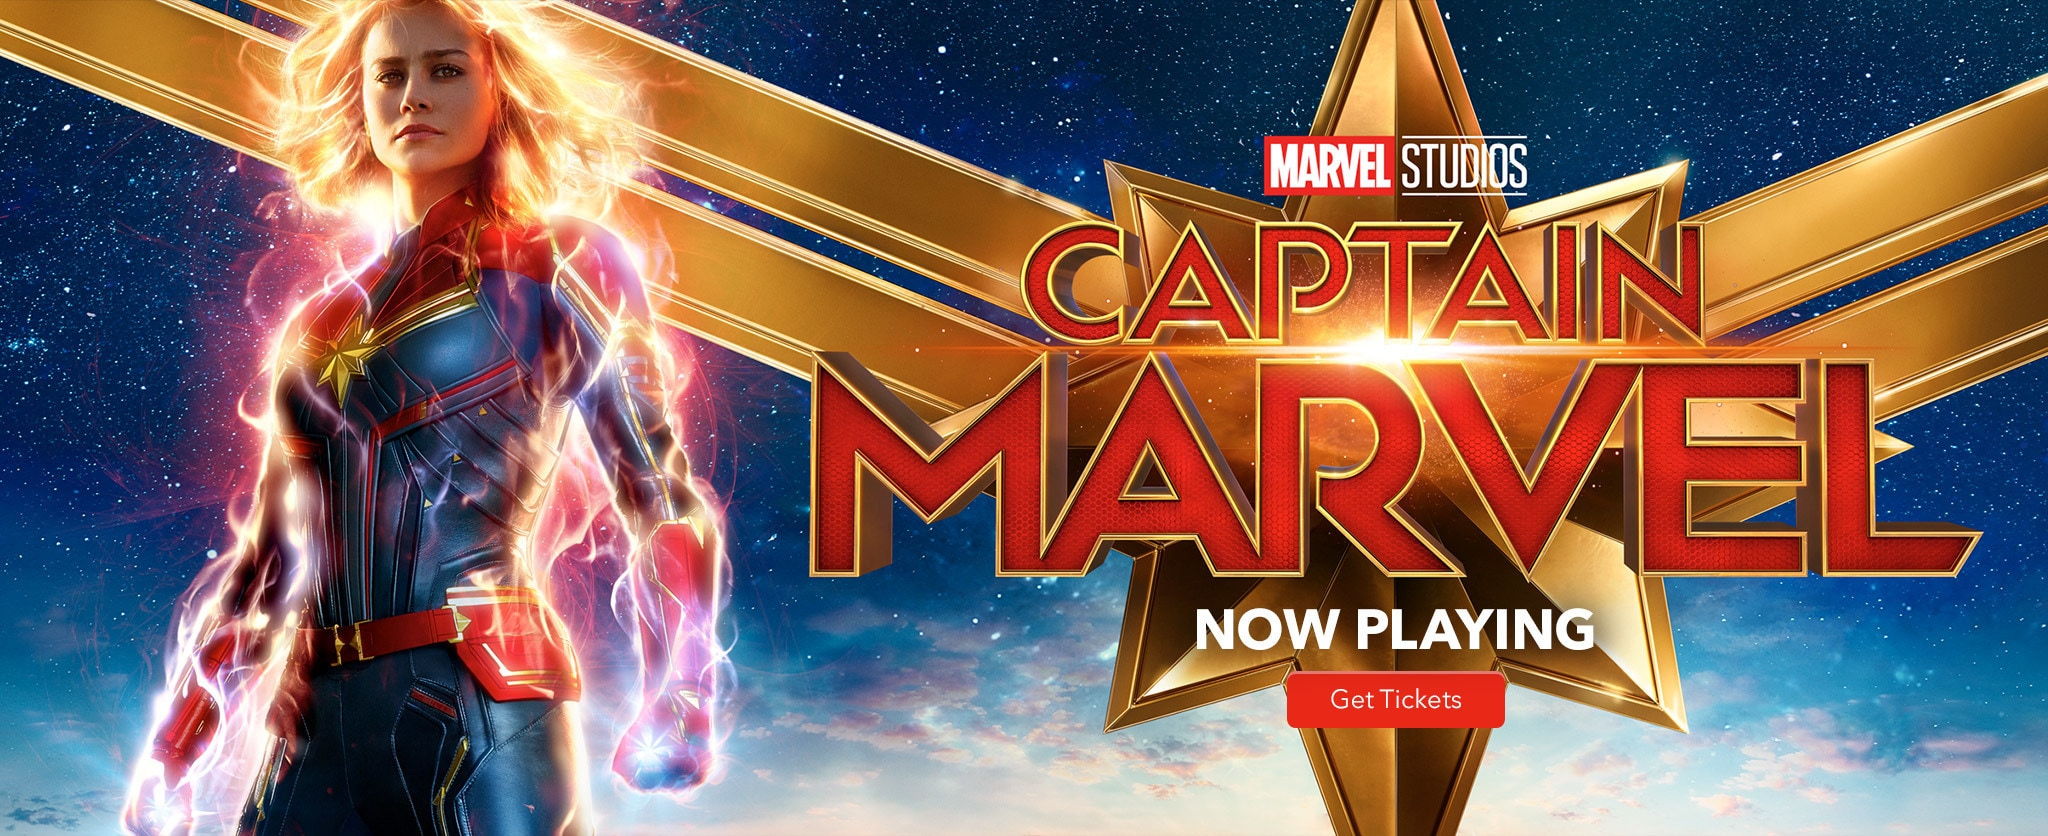 Captain Marvel - Now Playing - Get Tickets